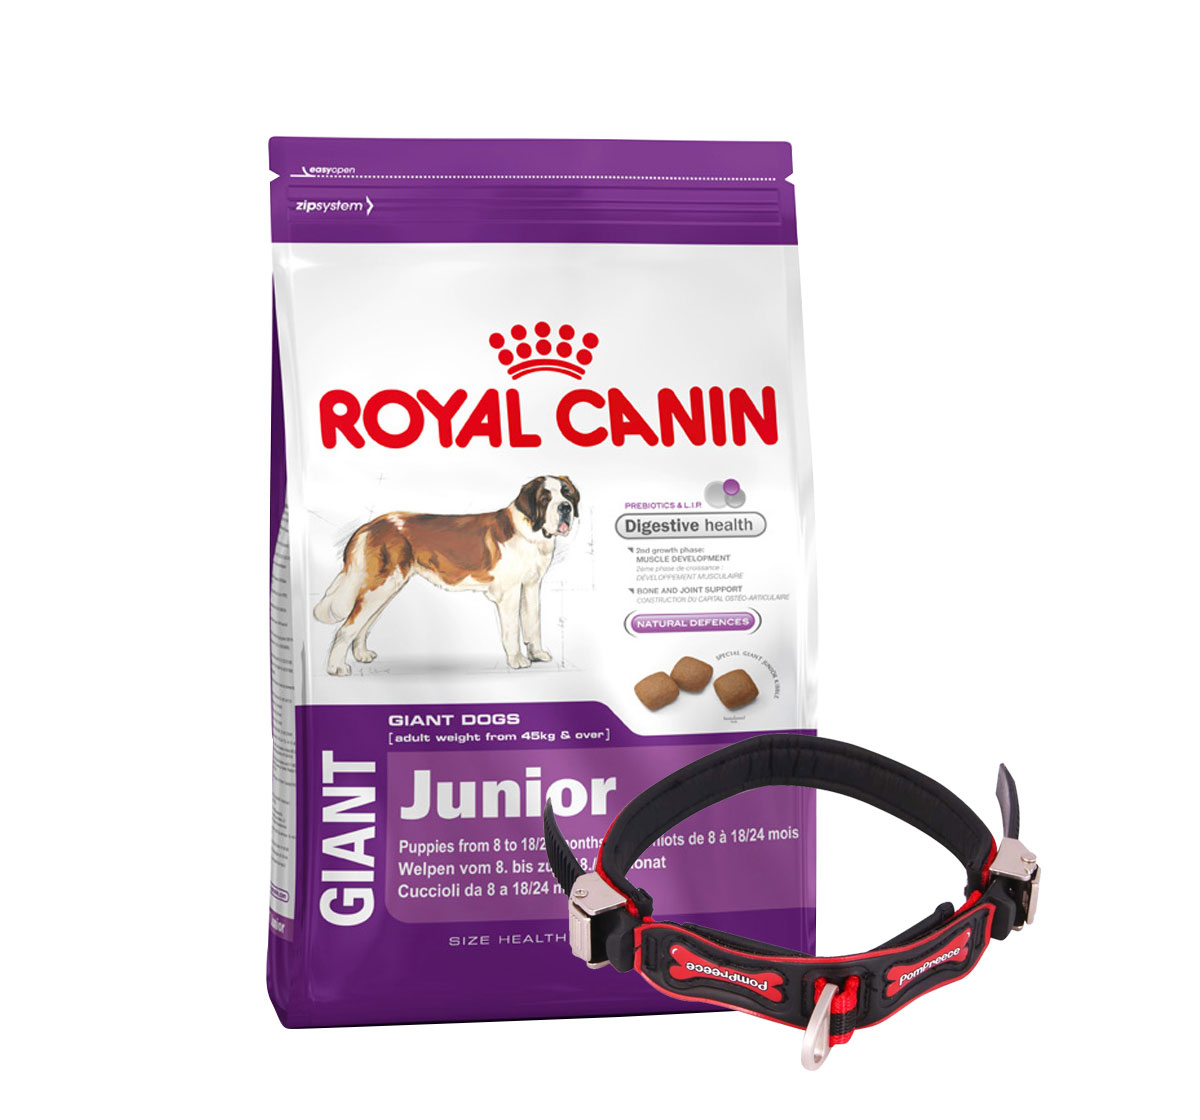 Royal Canin Giant Junior - 4 Kg With Ergocomfort Dog Collar Small-Red